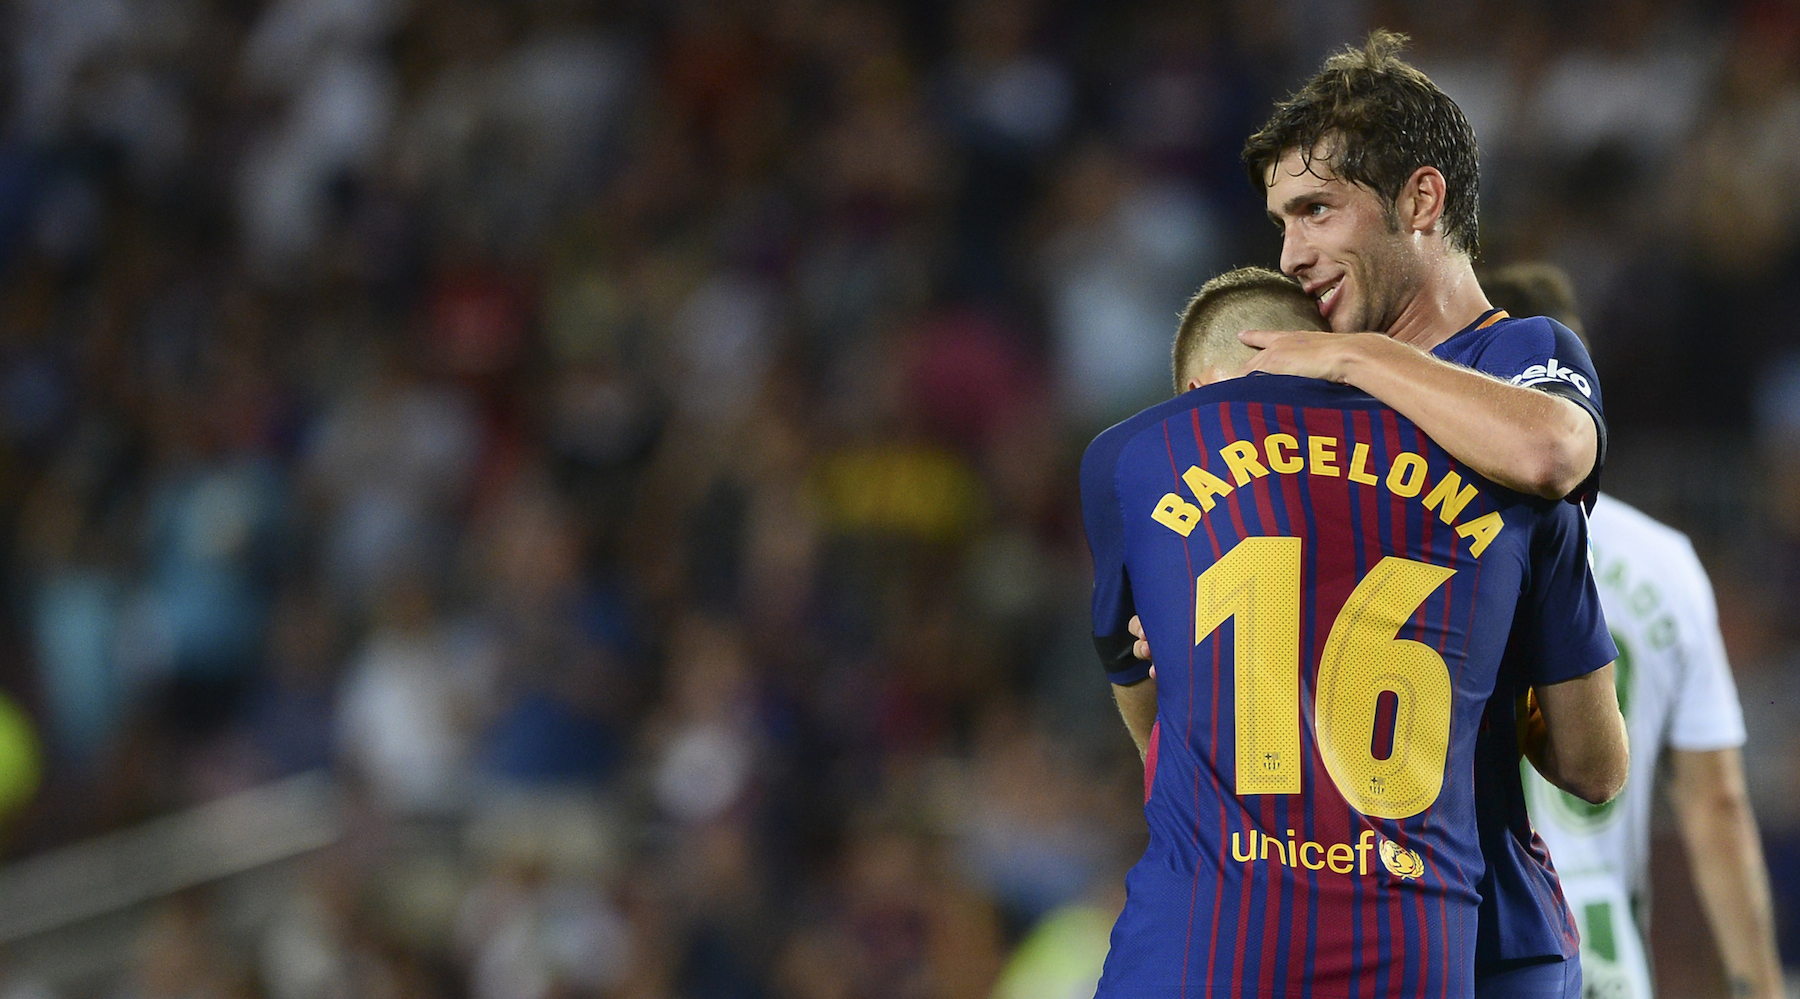 Barcelona's midfielder Sergi Roberto (R) celebrates with Barcelona's forward Gerard Deulofeu after scoring during the Spanish league footbal match FC Barcelona vs Real Betis at the Camp Nou stadium in Barcelona on August 20, 2017. / AFP PHOTO / Josep LAGO (Photo credit should read JOSEP LAGO/AFP/Getty Images)